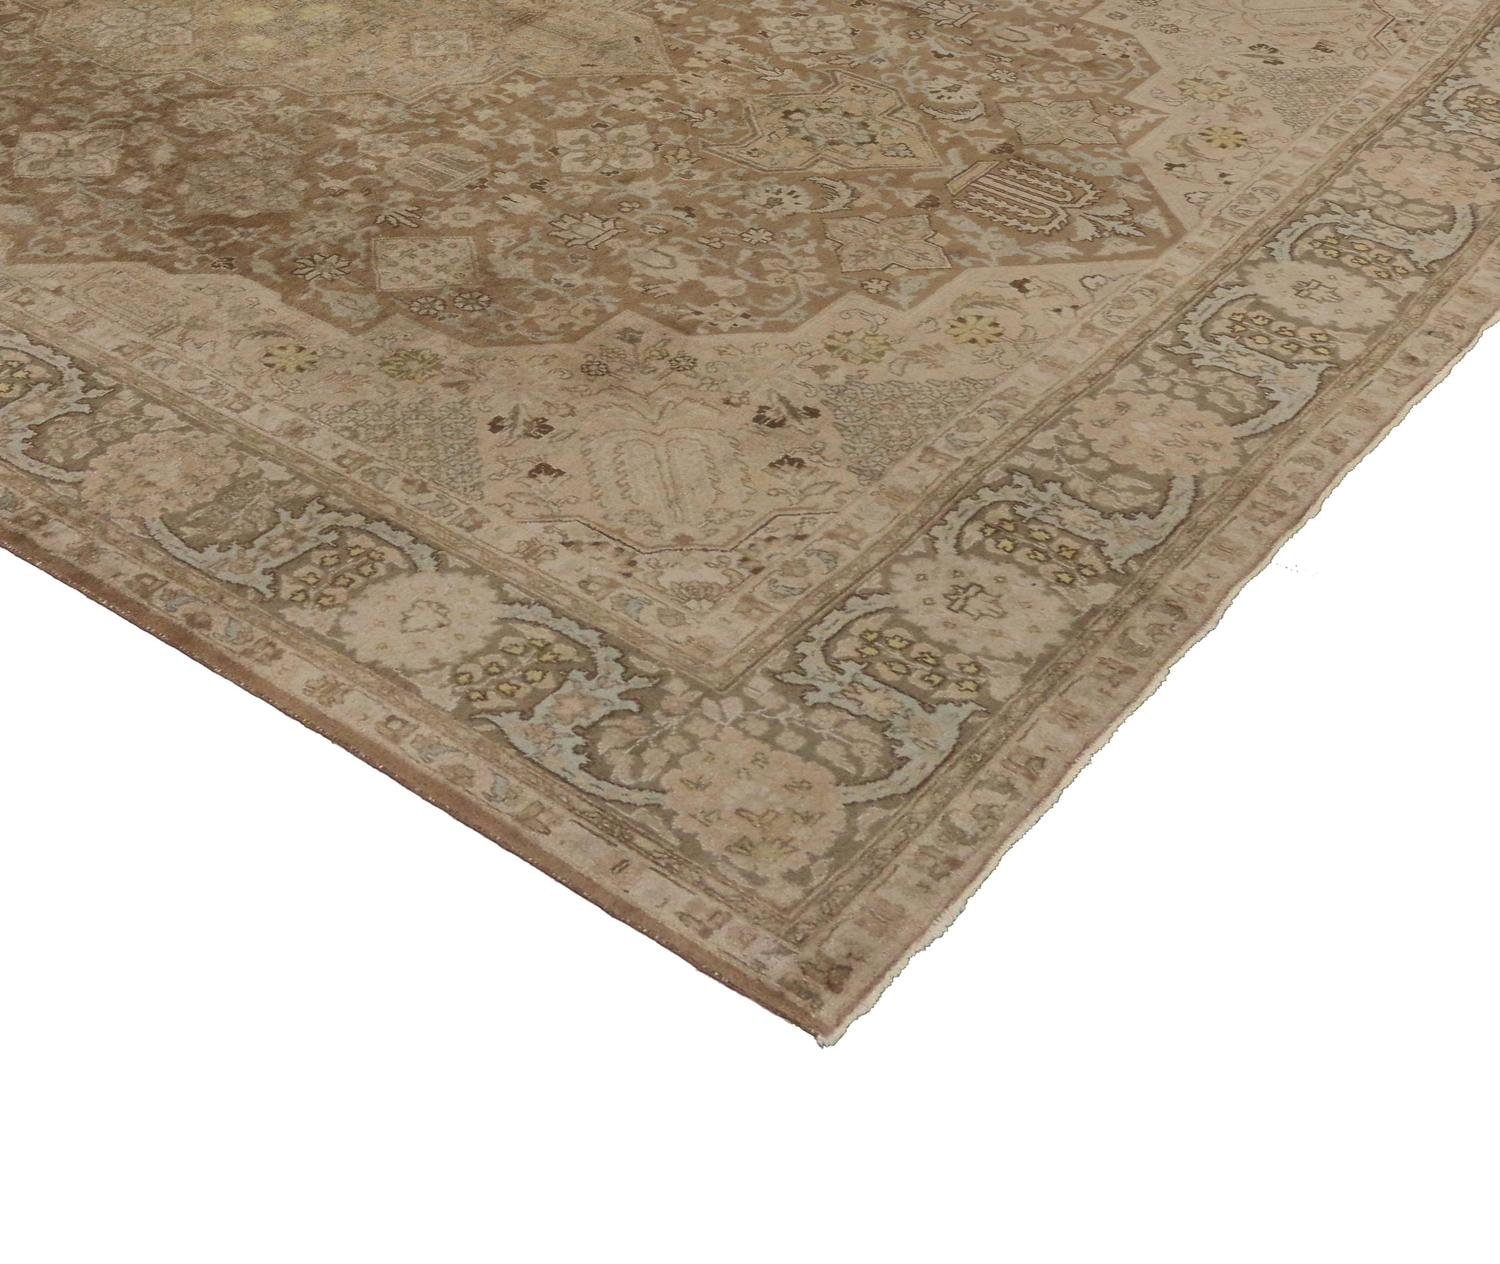 Vintage Persian Tabriz Area Rug In Neutral Colors For Sale